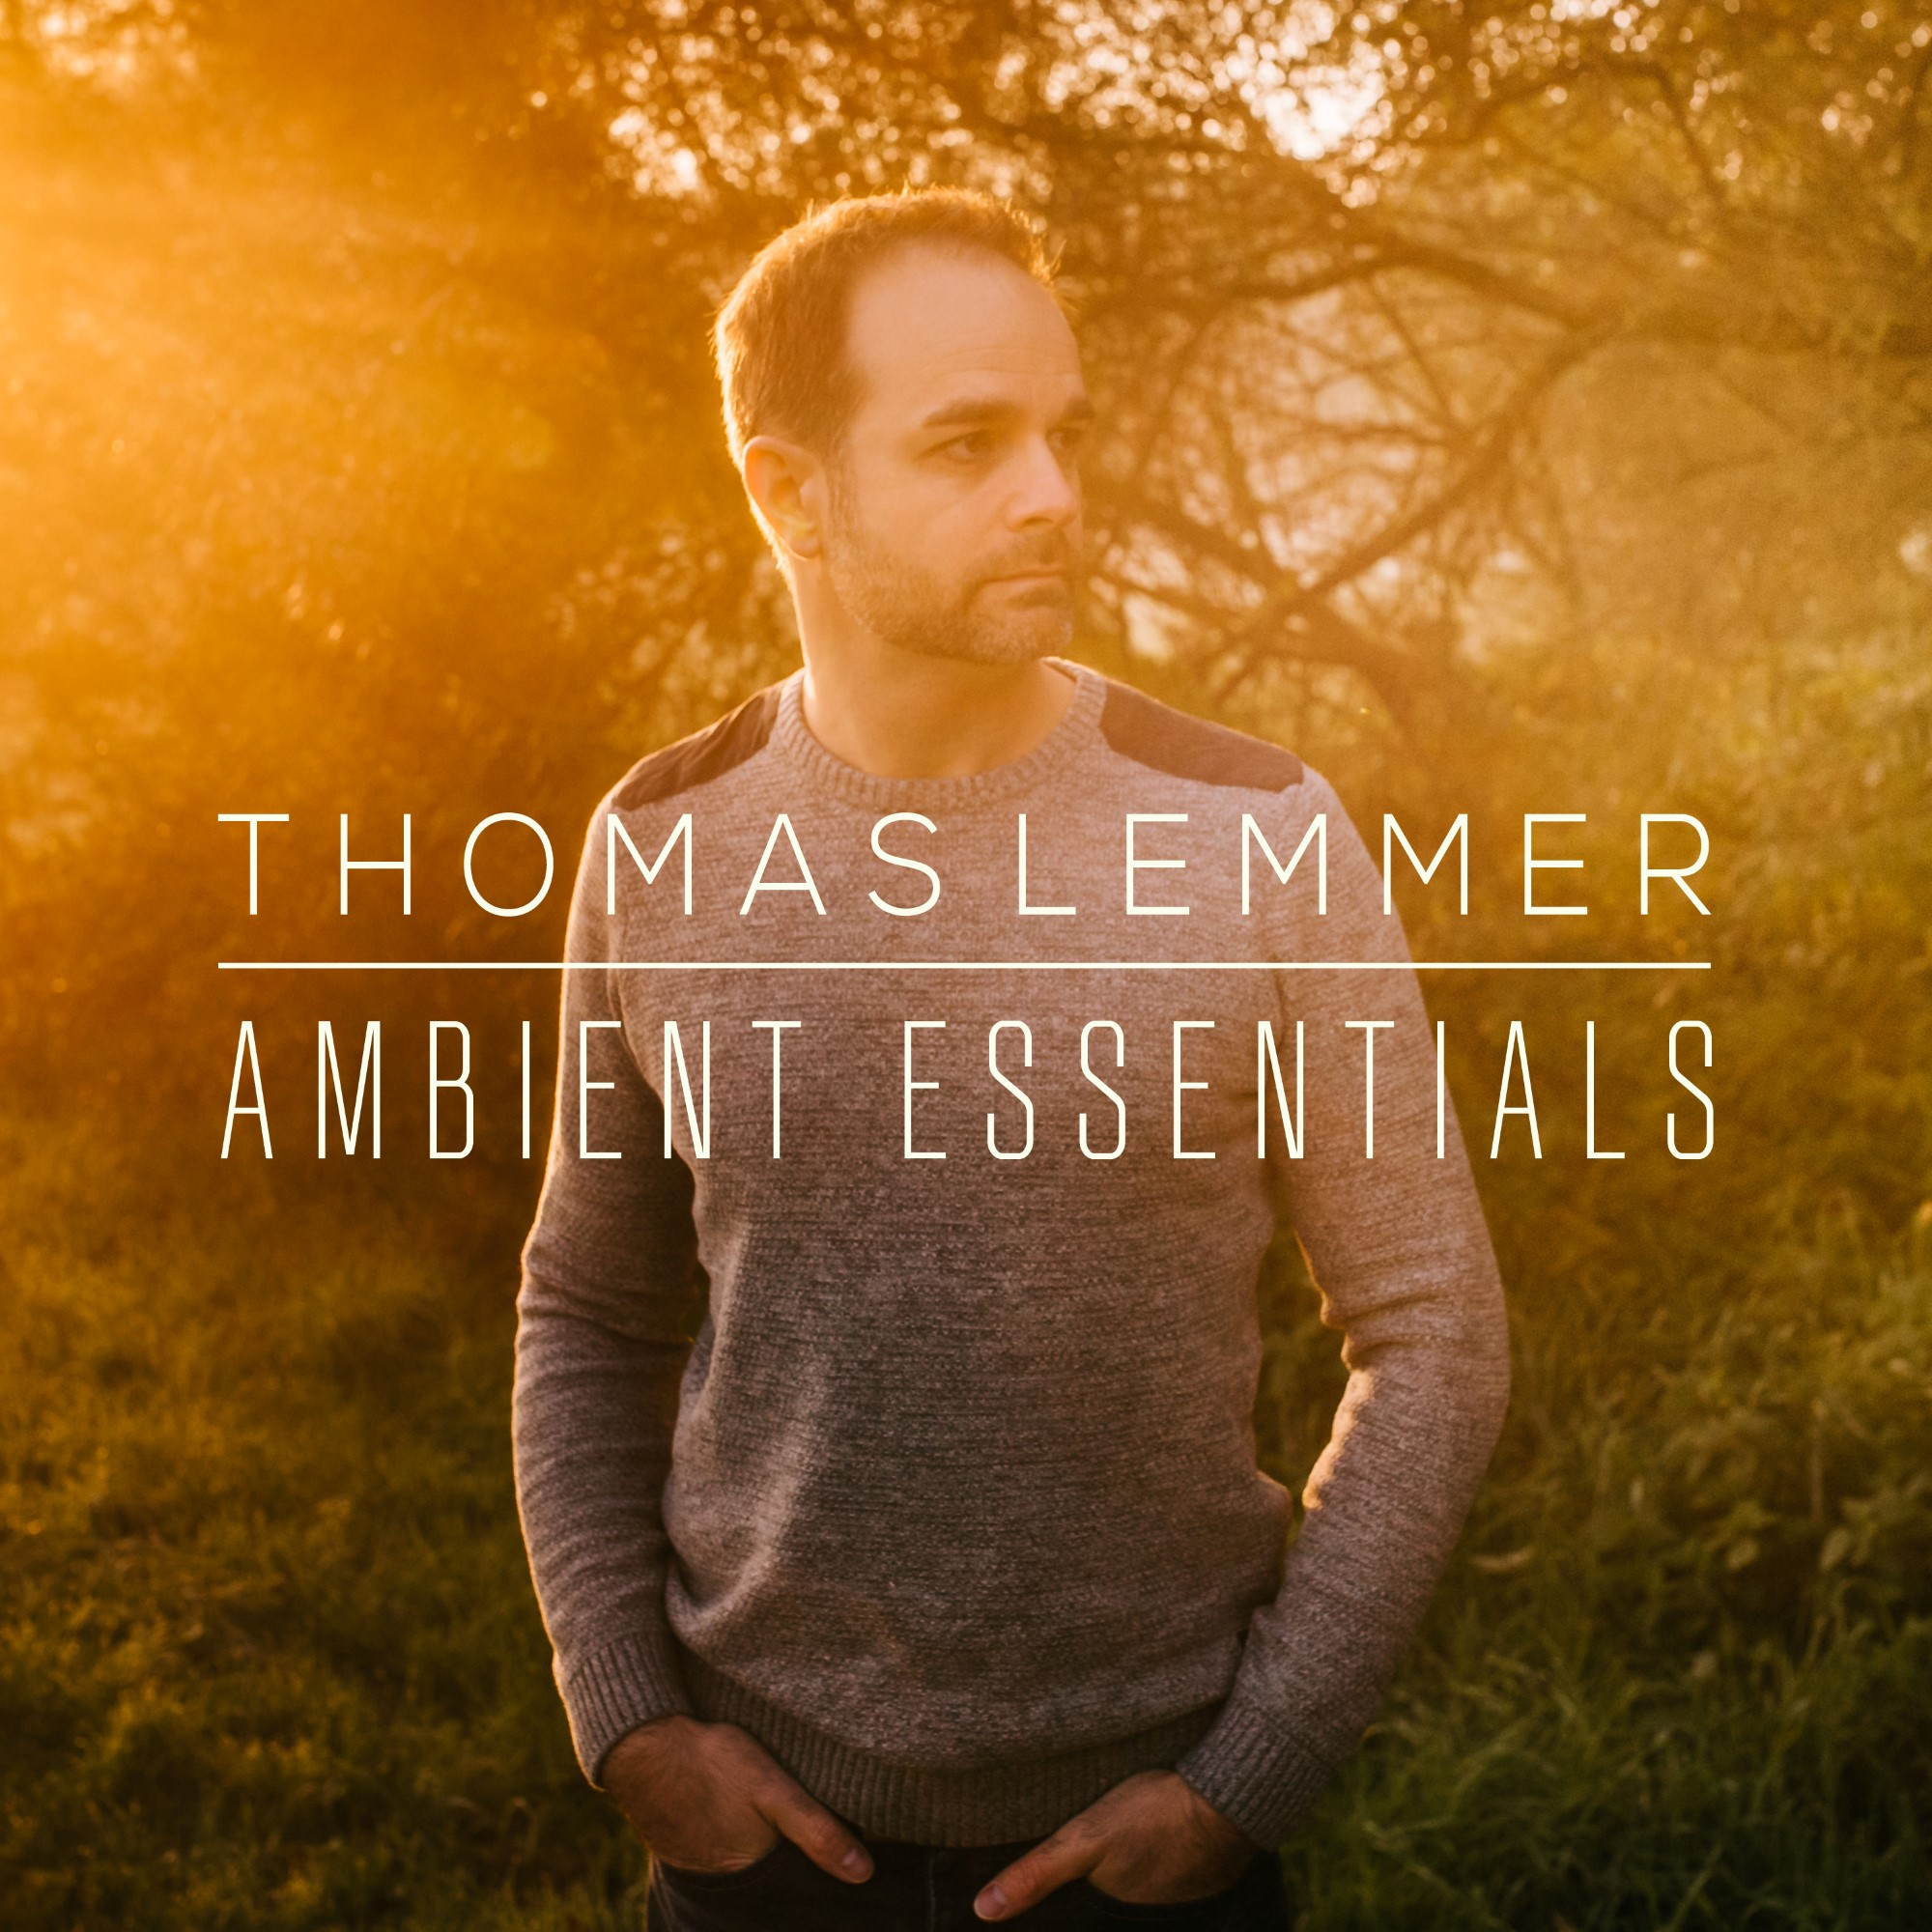 AMBIENT ESSENTIALS by THOMAS LEMMER